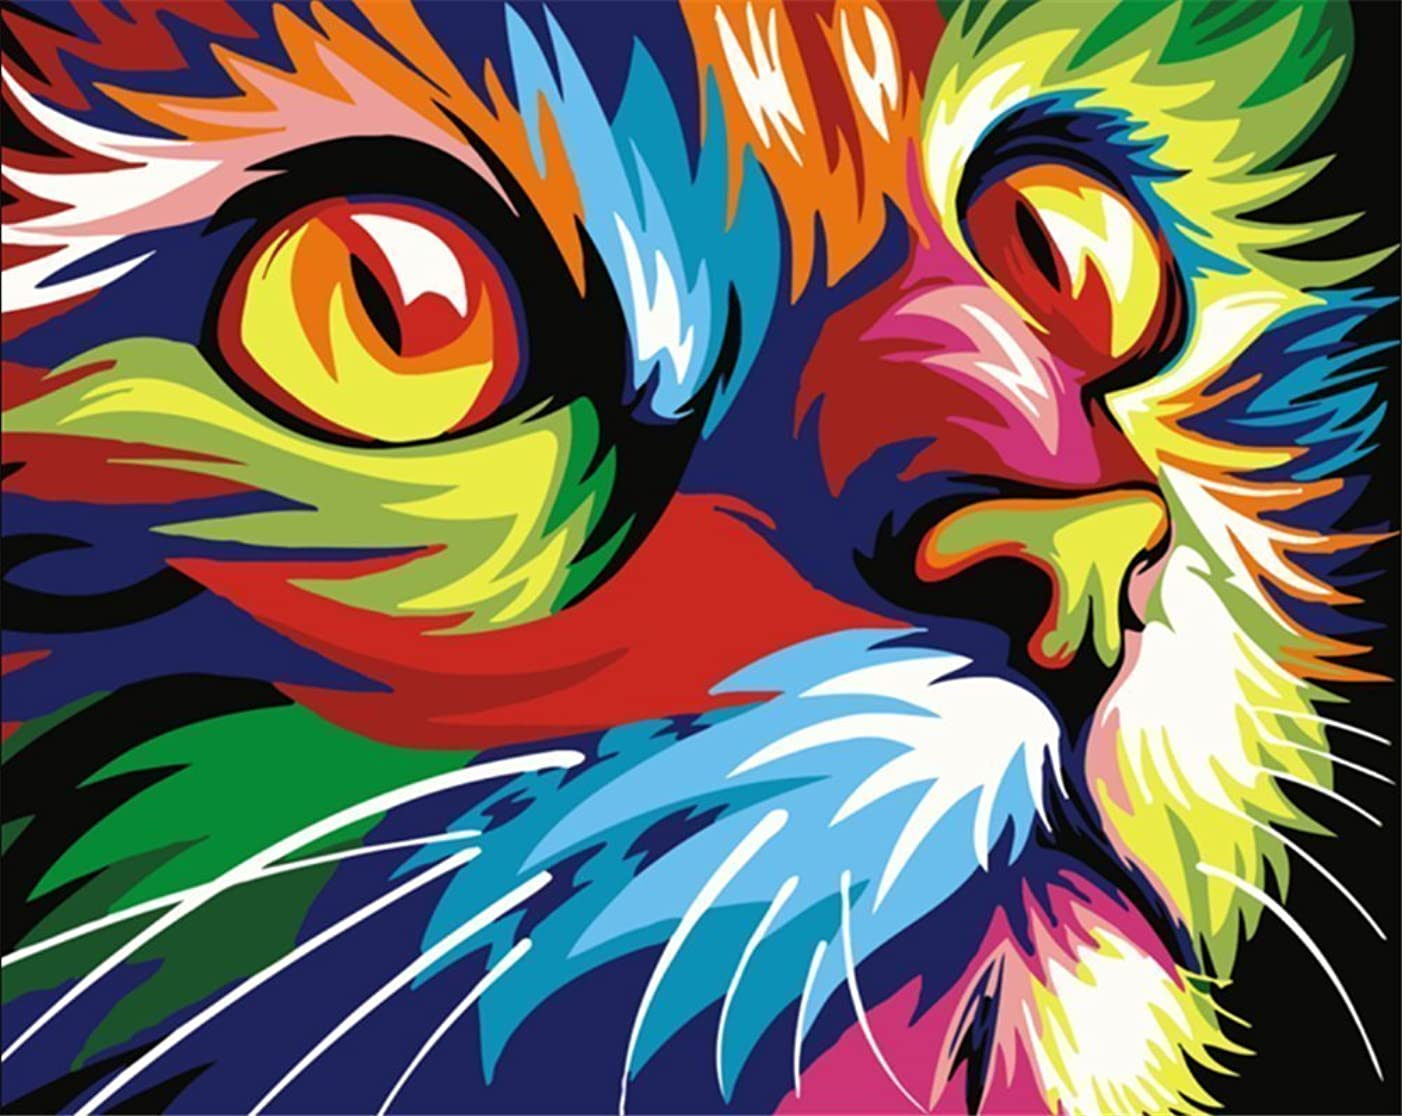 [ Framedless ] Diy Oil Painting Paint by Number Kit for Adult Kids - Colorful Kitten 16x20 Inch